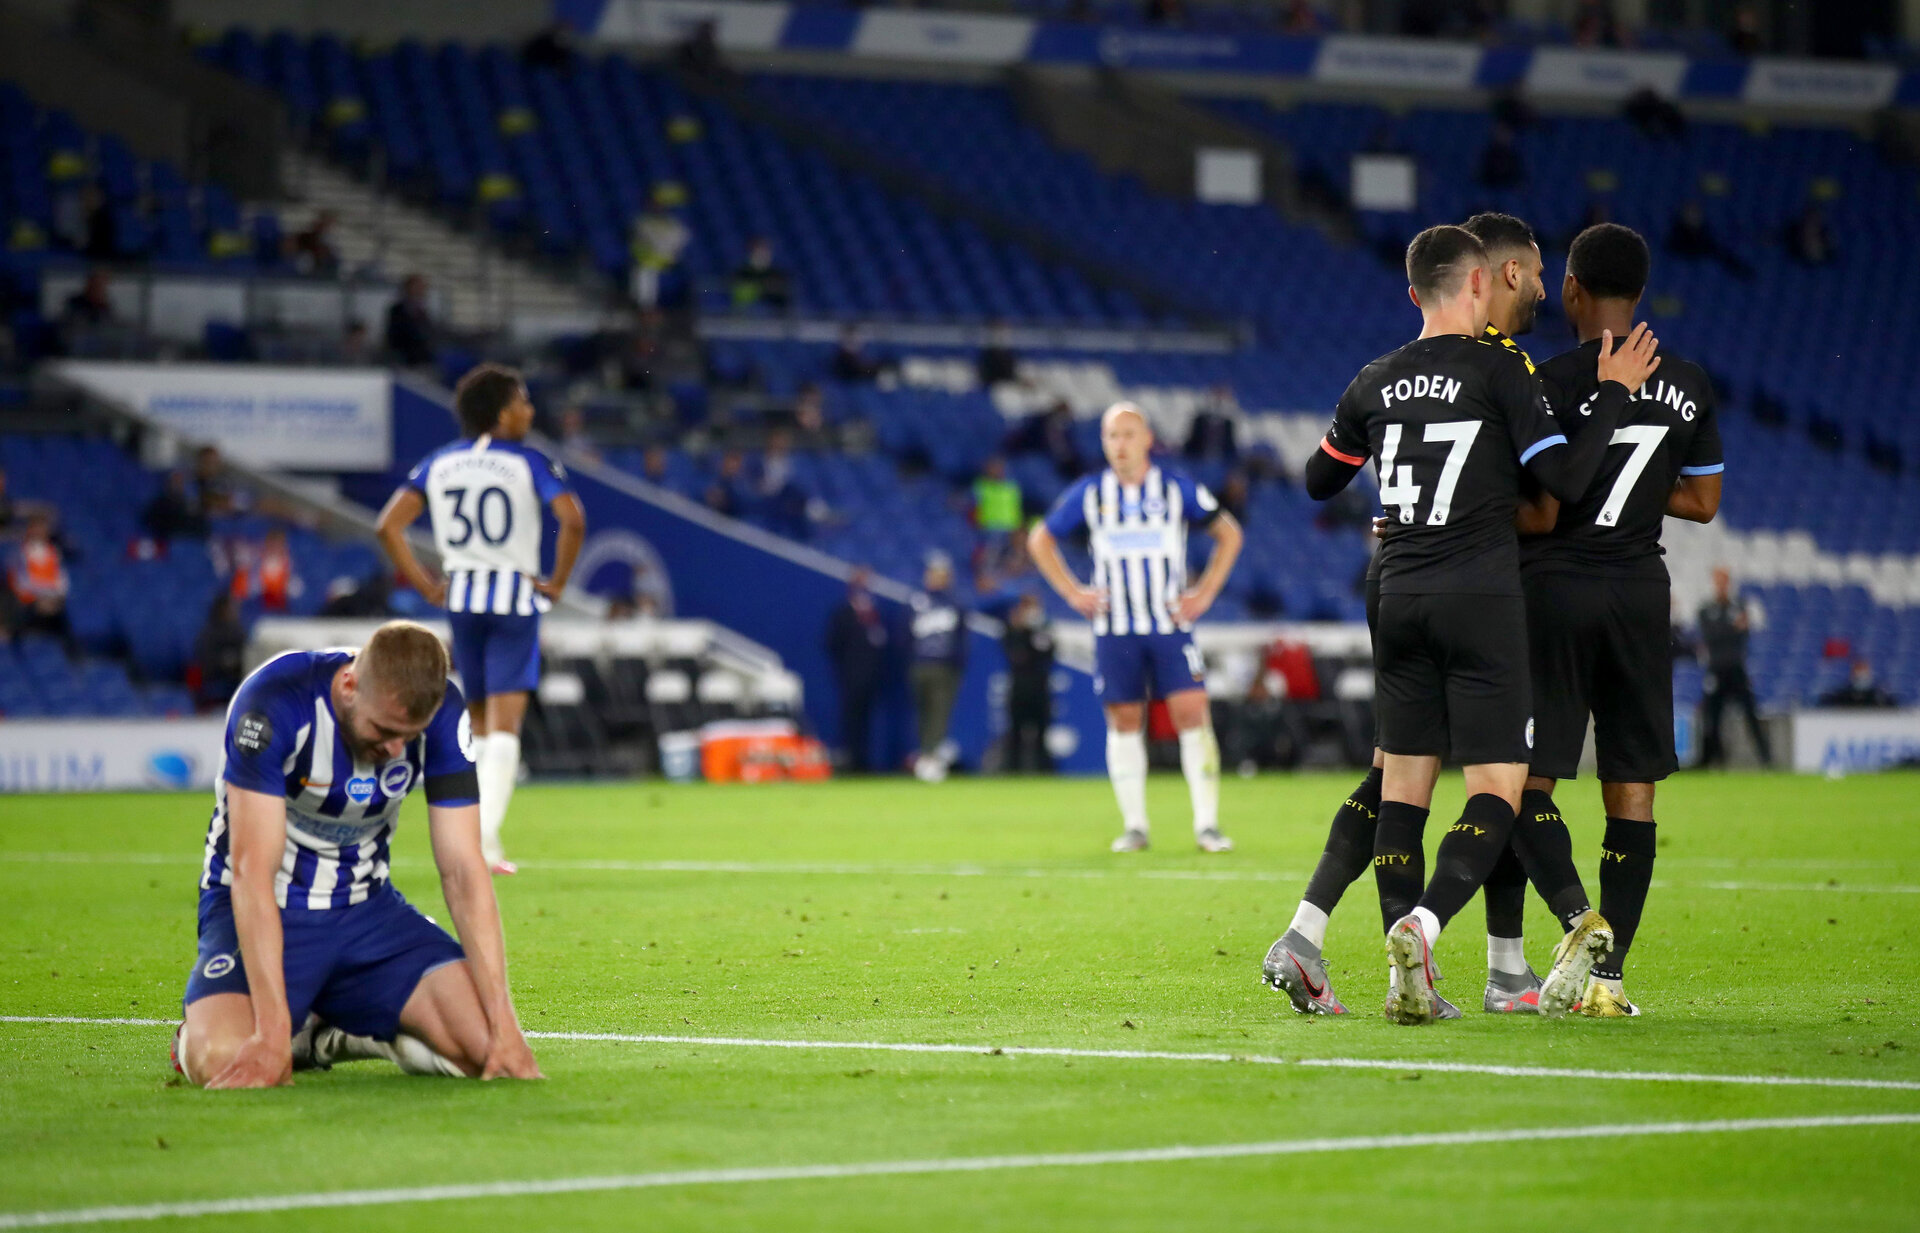 BRIGHTON, ENGLAND - JULY 11: Raheem Sterling of Manchester City celebrates after scoring his team's fifth goal, his hattrick, with team mates Riyad Mahrez and Phil Foden during the Premier League match between Brighton & Hove Albion and Manchester City at American Express Community Stadium on July 11, 2020 in Brighton, England. Football Stadiums around Europe remain empty due to the Coronavirus Pandemic as Government social distancing laws prohibit fans inside venues resulting in all fixtures being played behind closed doors. (Photo by Julian Finney/Getty Images)